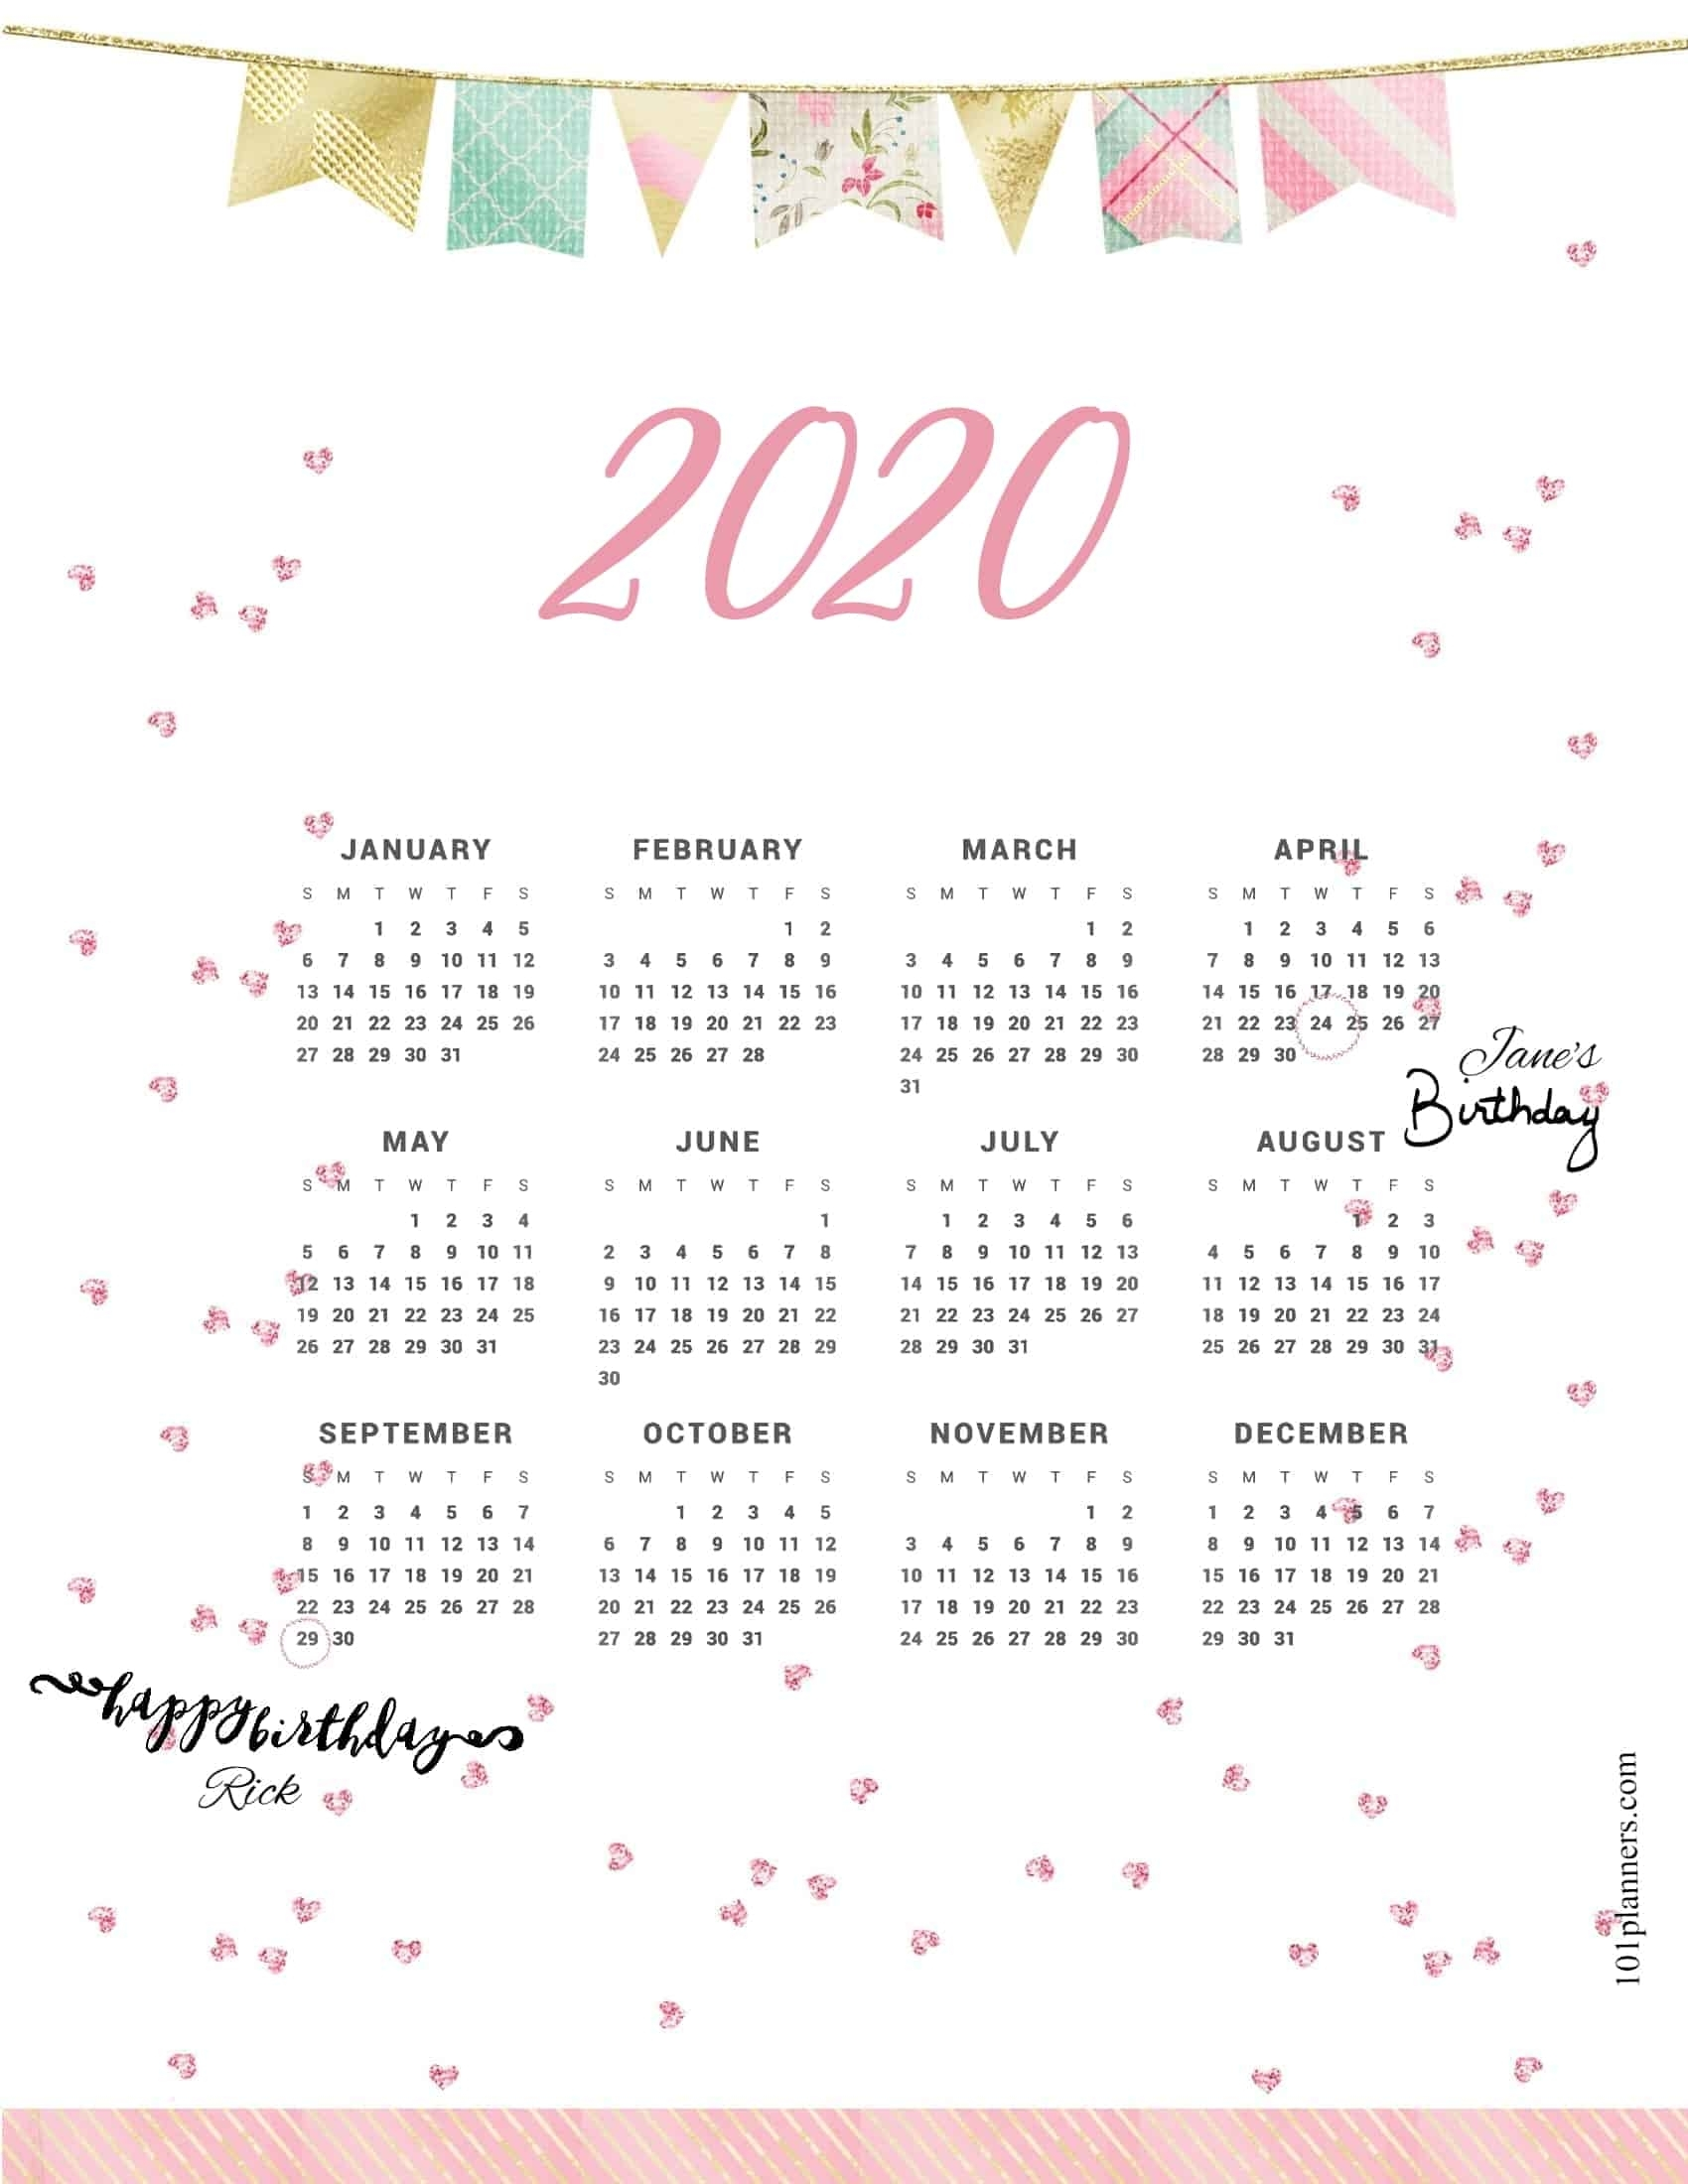 Free Printable 2020 Yearly Calendar At A Glance | 101 with 2020 Year At A Glance Calendar Free